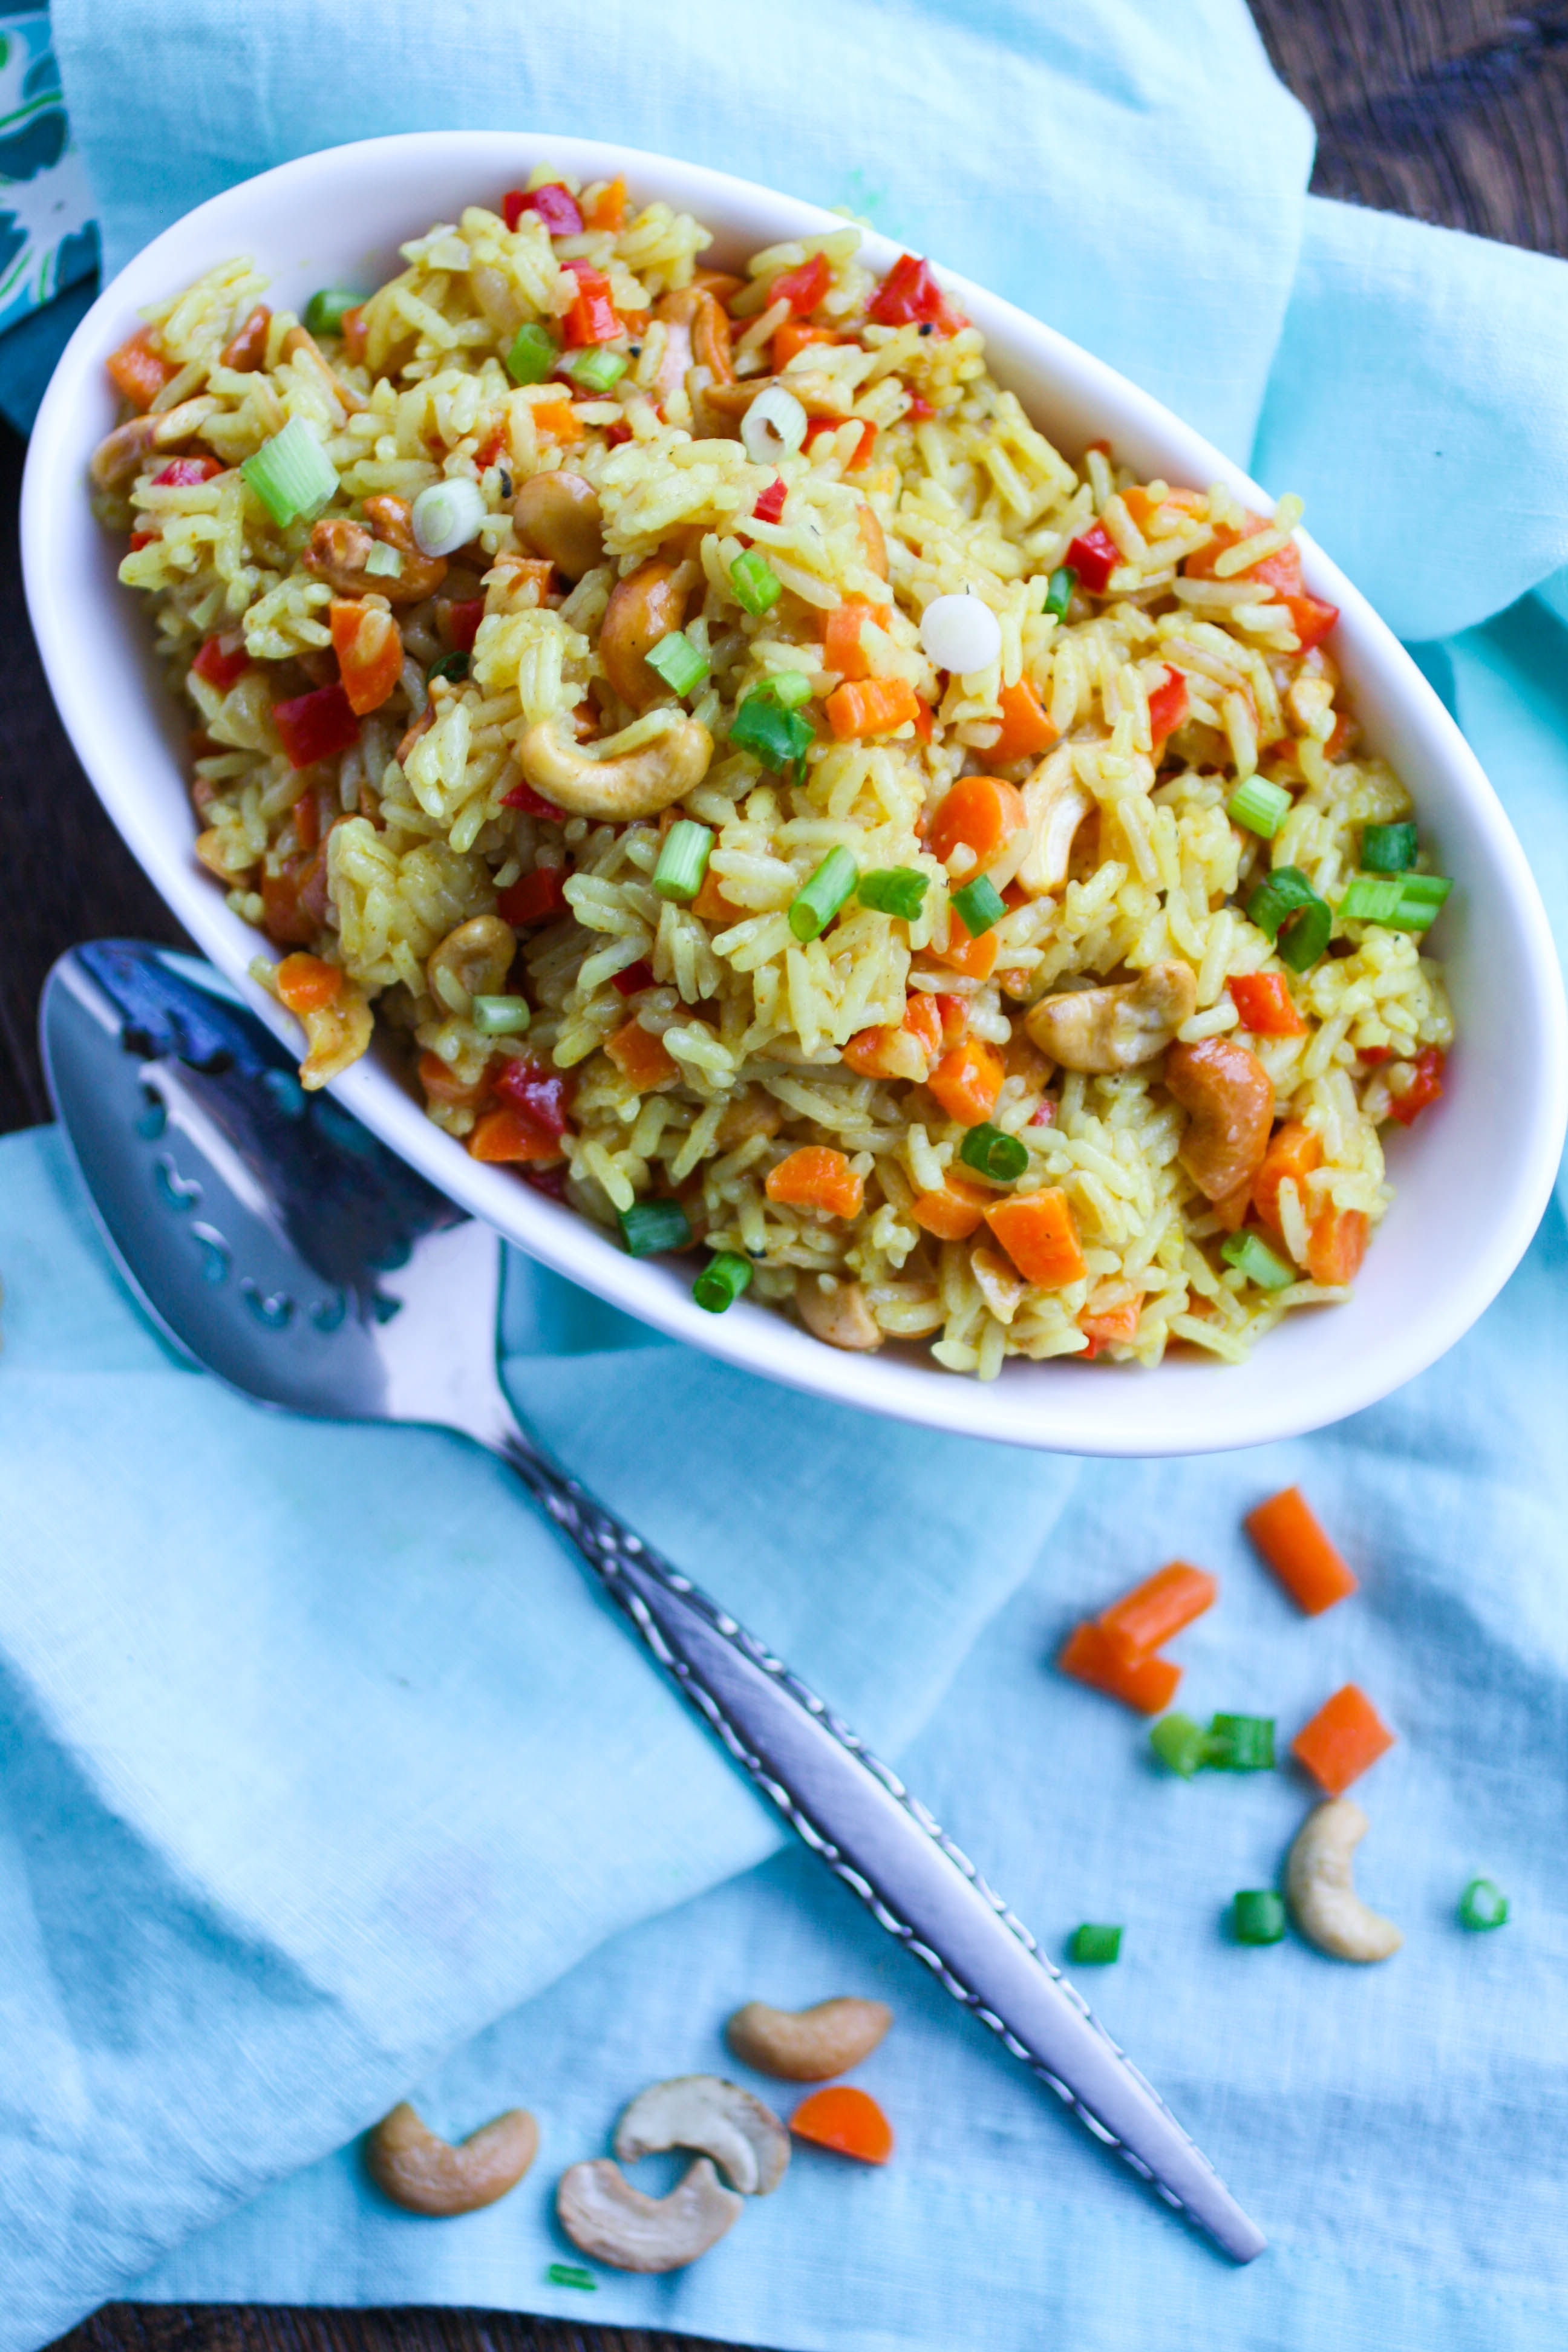 Coconut Carrot and Cashew Rice Pilaf is a great side dish that's easy to make. Use the staples from your pantry to put this rice dish together!